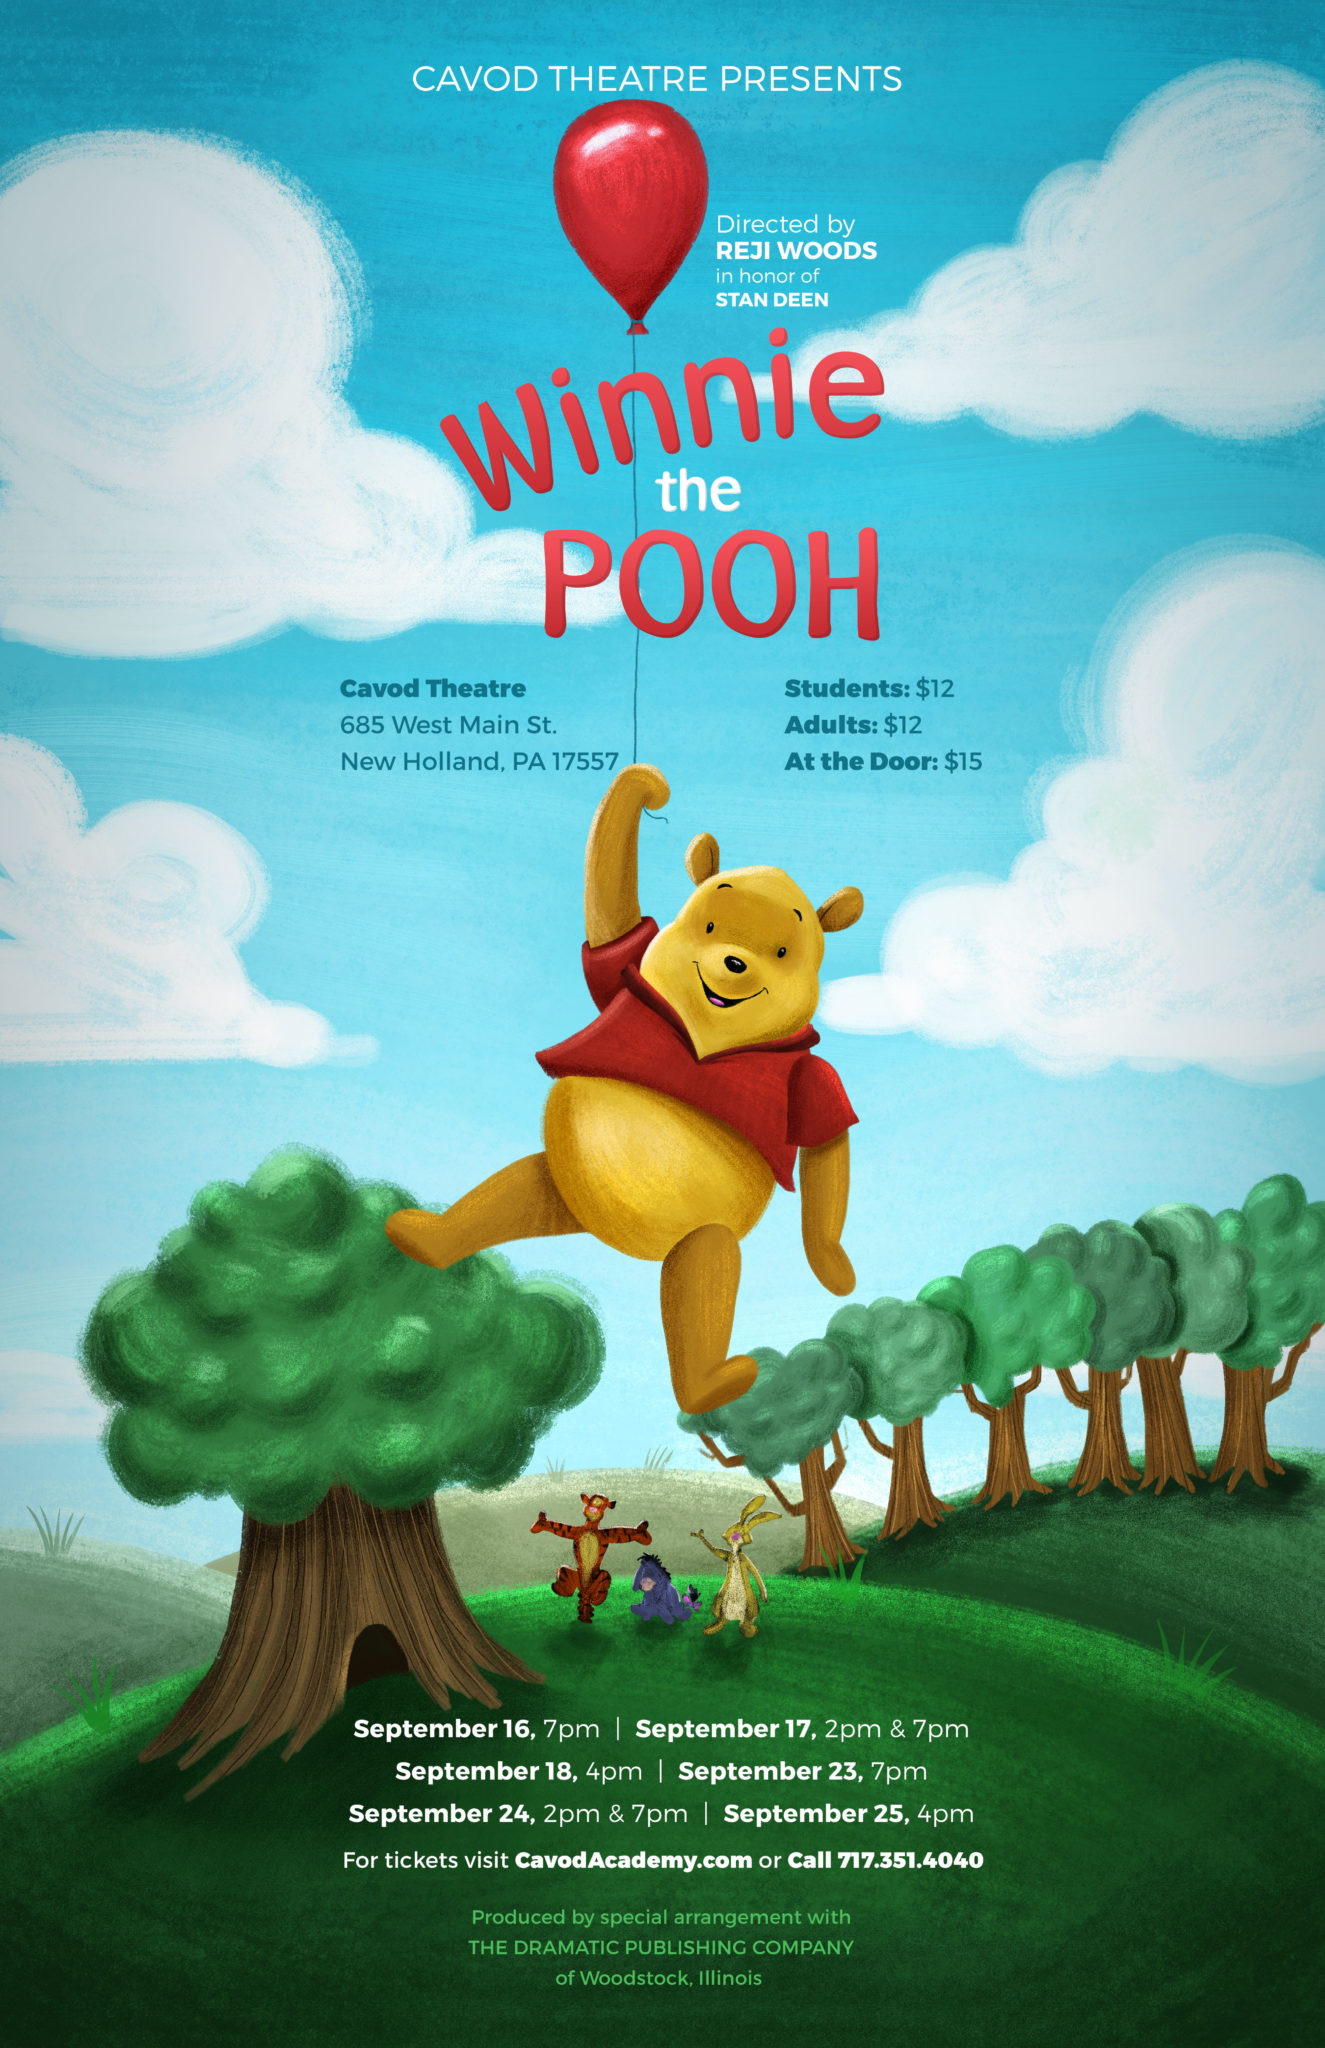 Winnie the pooh poster Cavod theatre productions